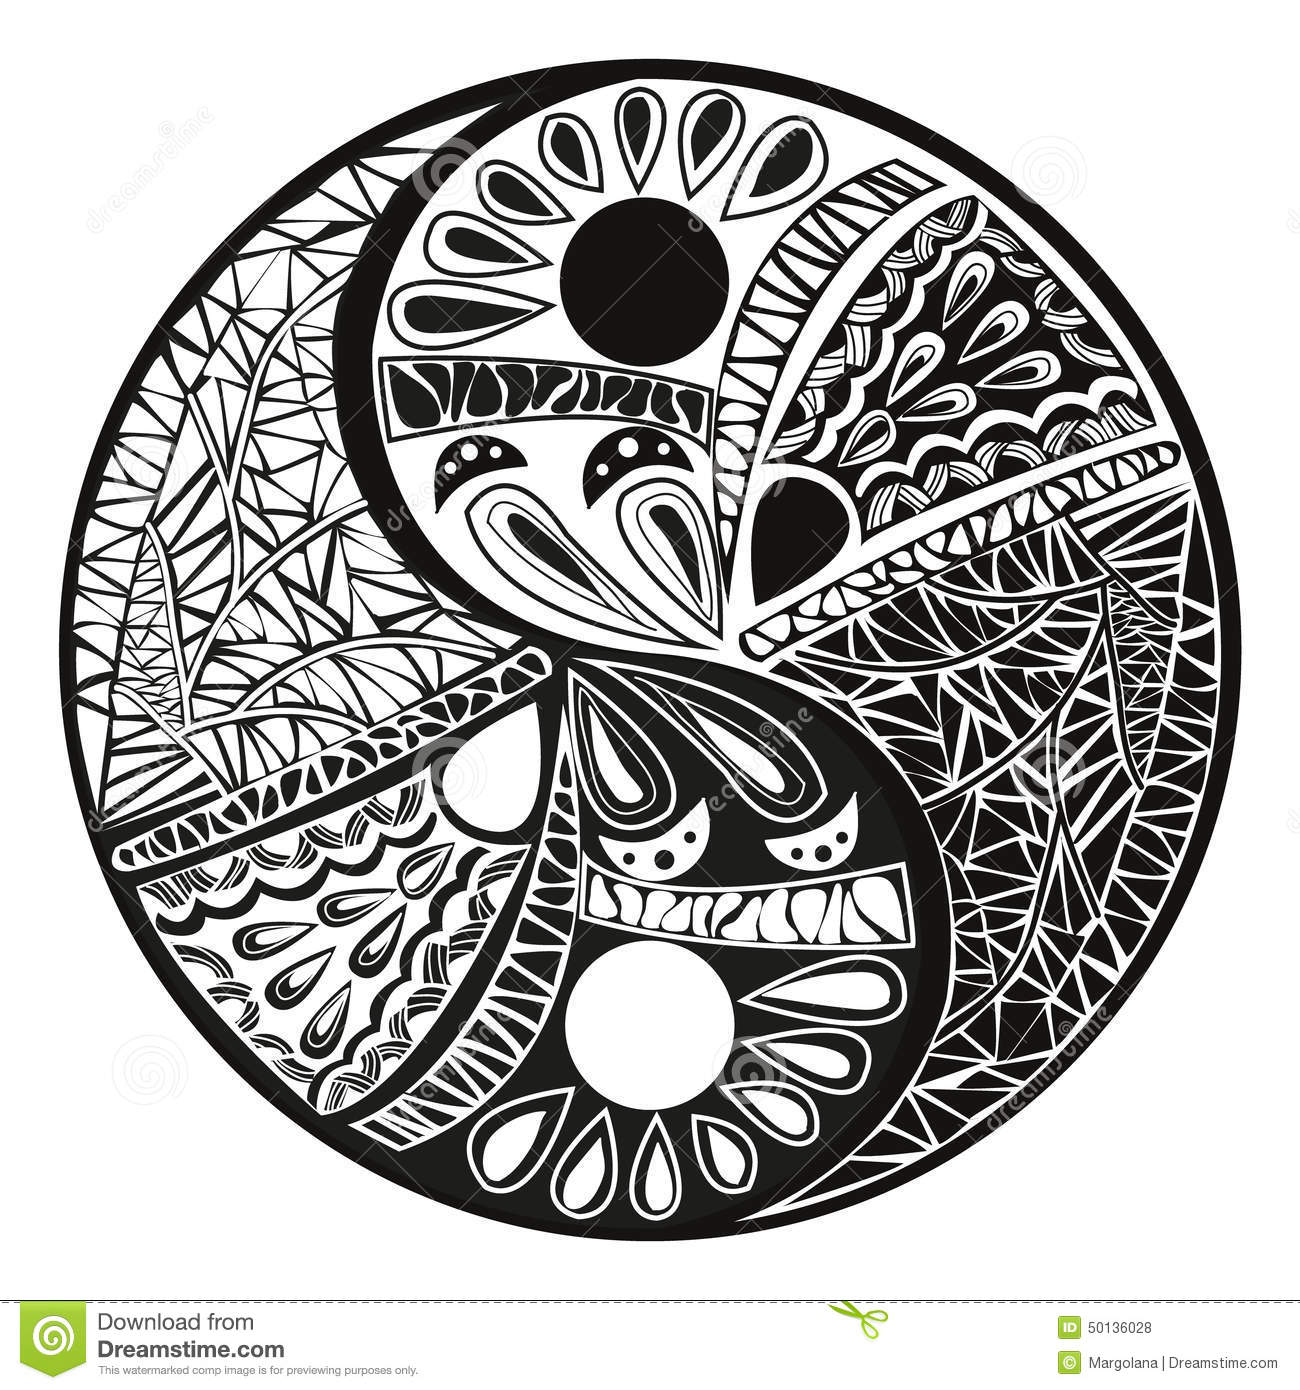 Yin yang tattoo for design symbol illustration stock for Architecture yin yang